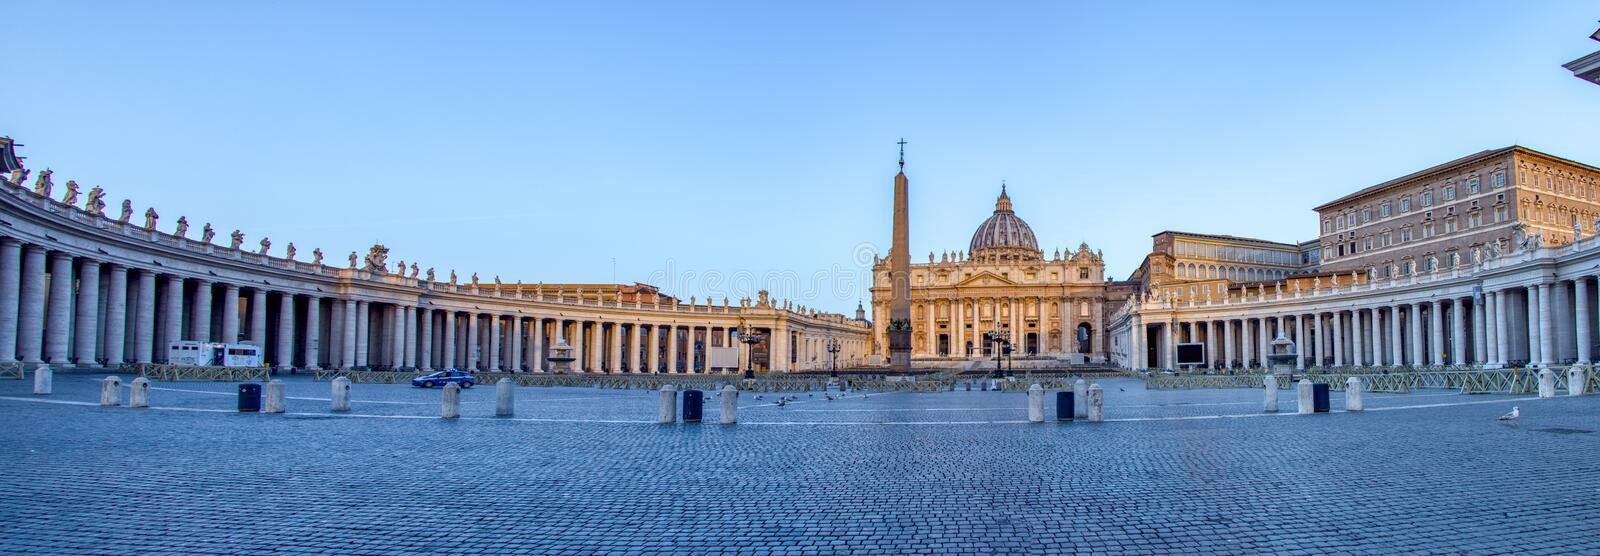 St. Peter`s Square in Vatican City - Rome, Italy. Panoramic of St. Peter`s Square in Vatican City at dawn - Rome, Italy royalty free stock image